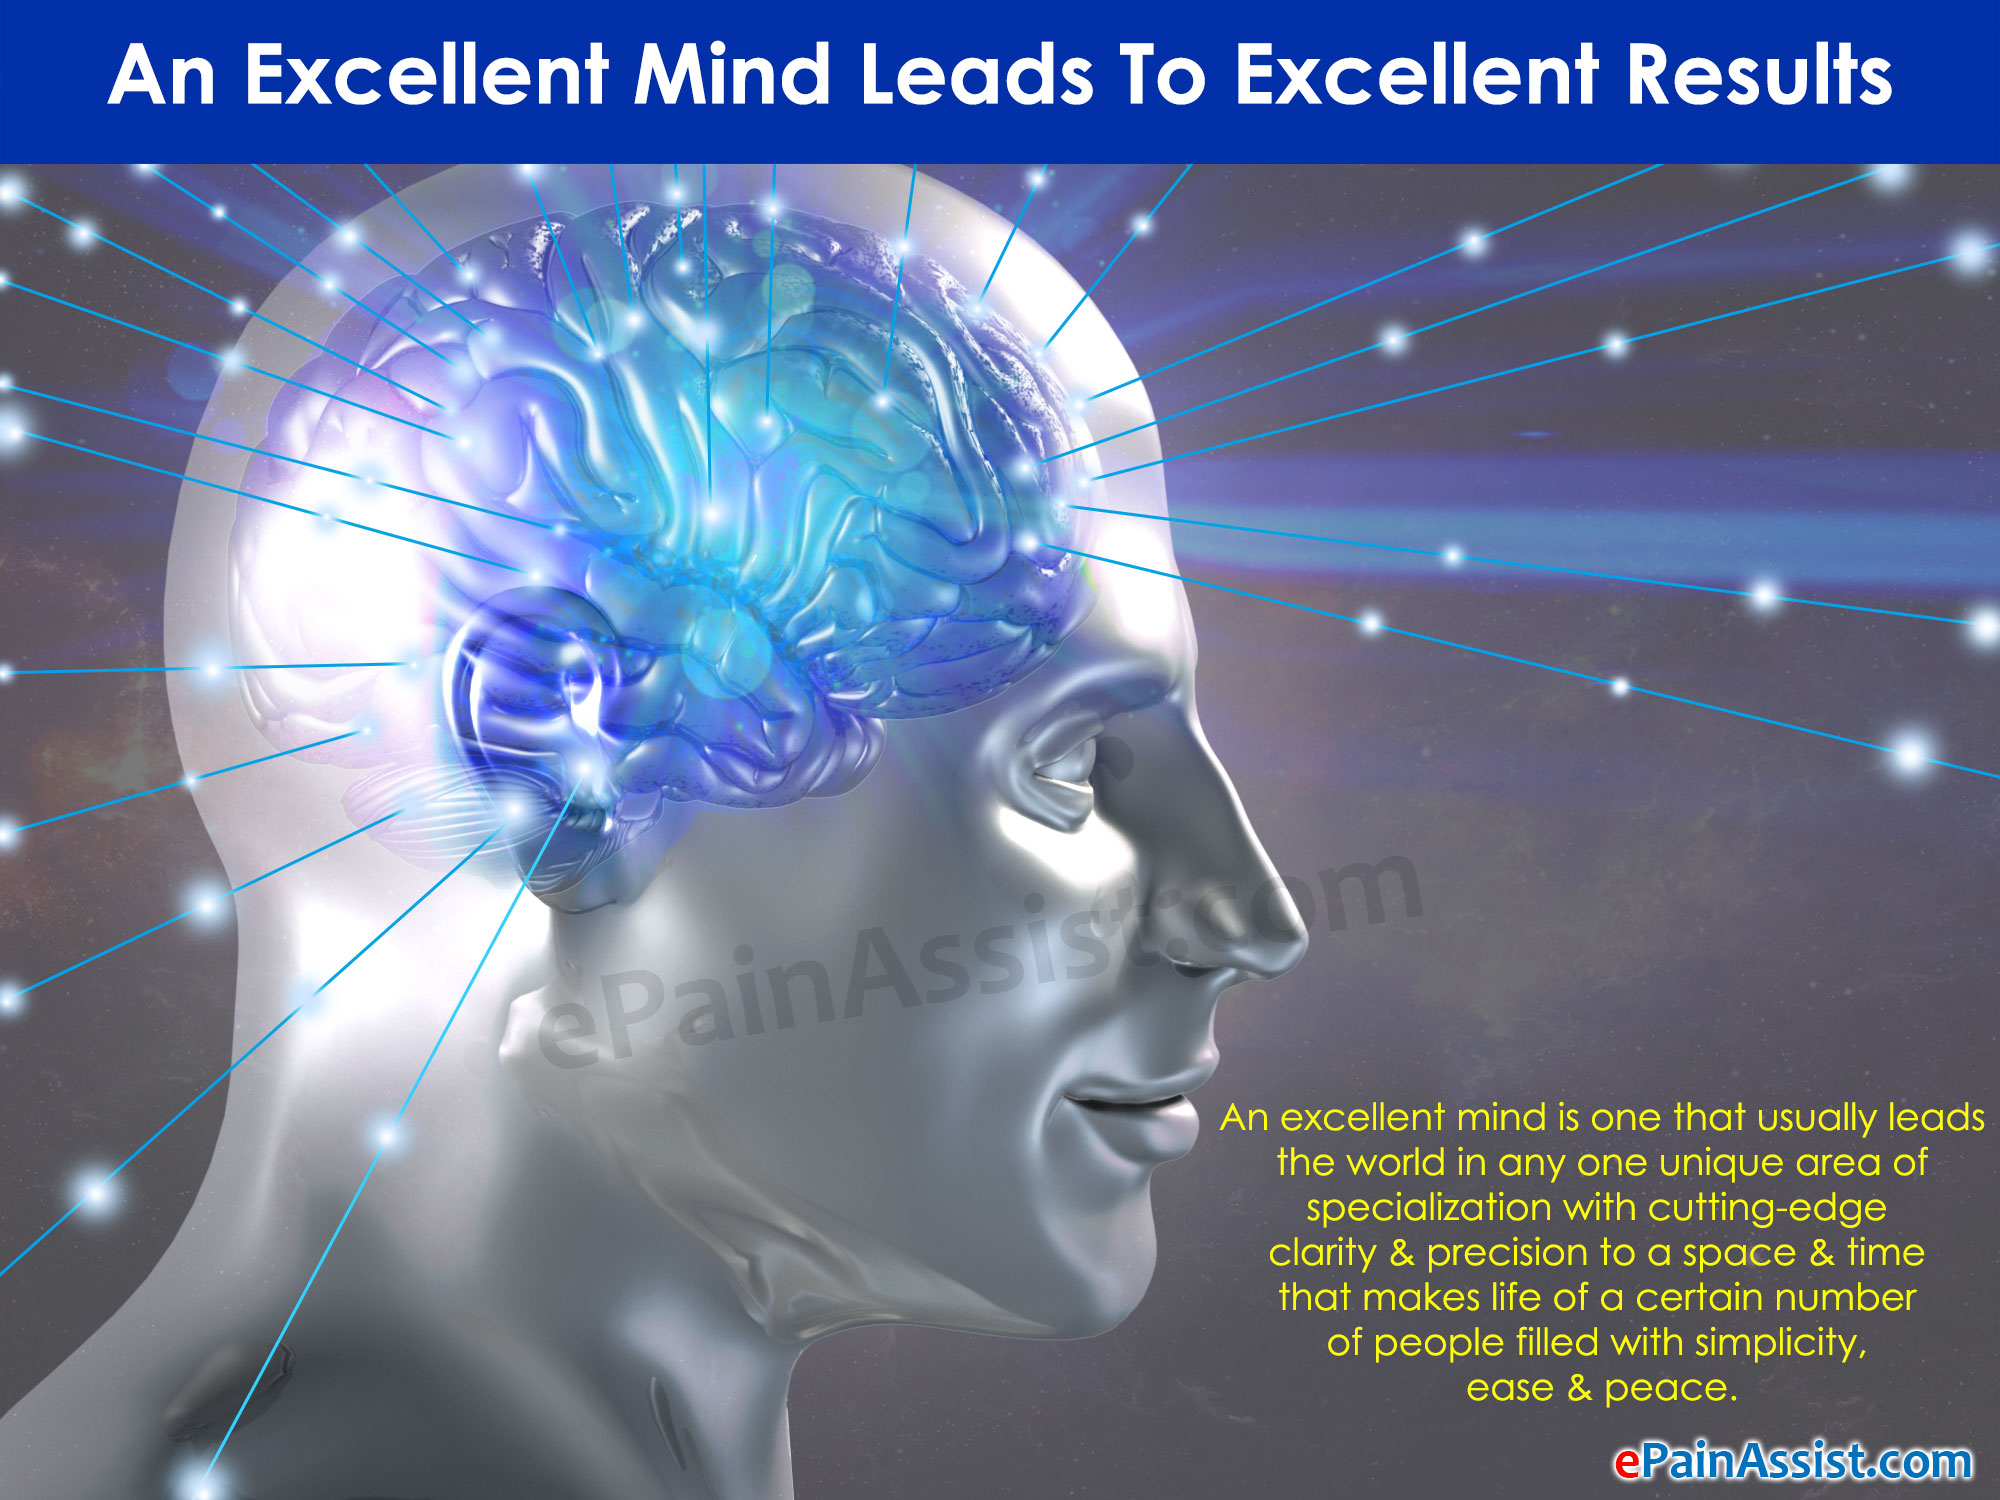 An Excellent Mind Leads To Excellent Results